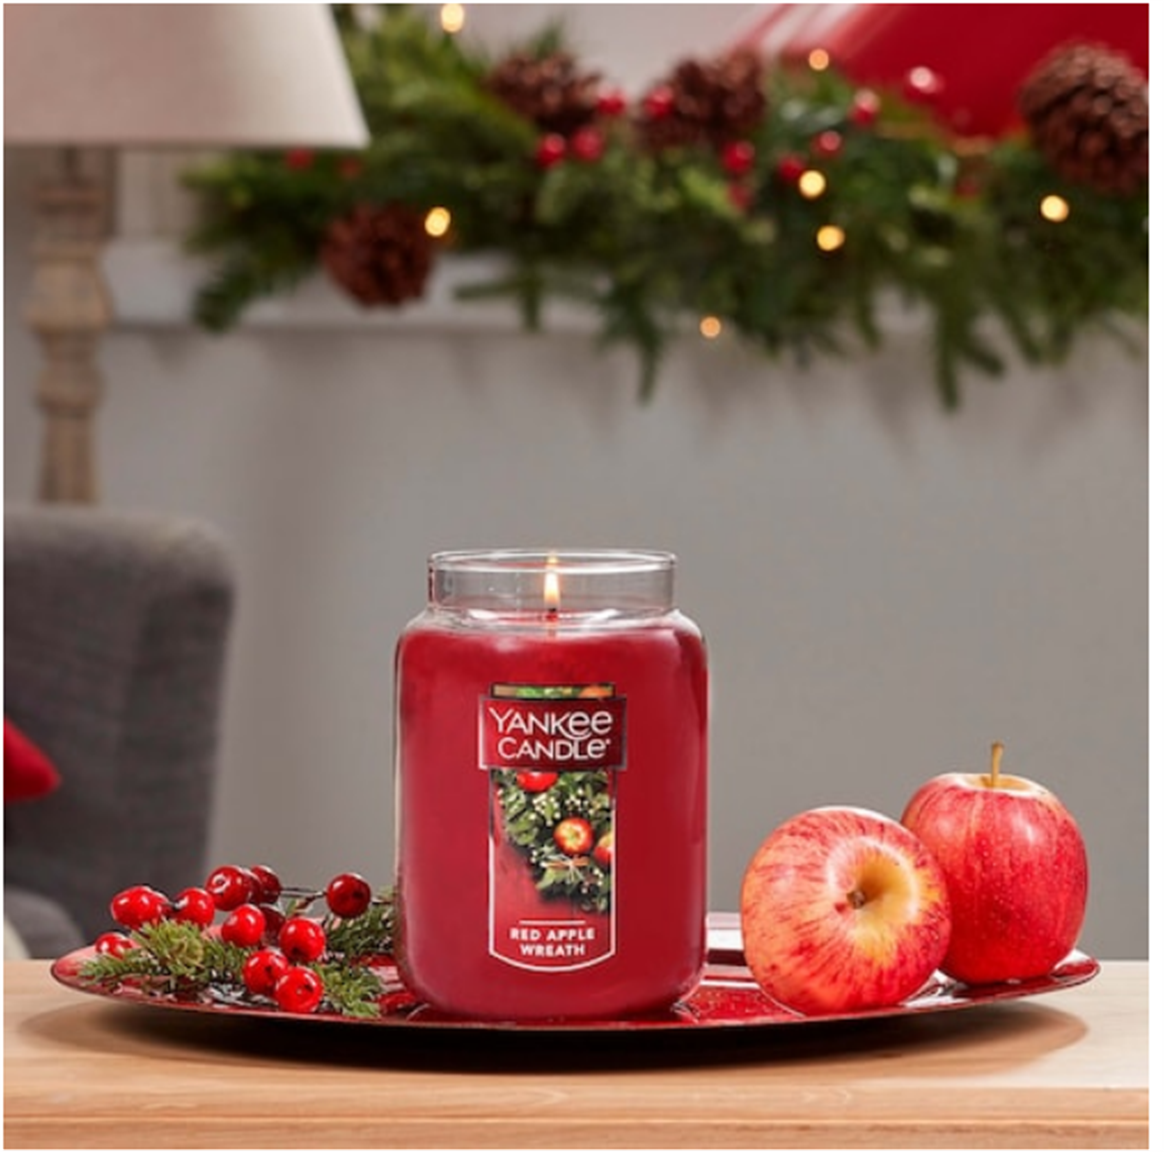 Kohls – Yankee Candle Large Jar Candles (22 oz) Only $9.92, Reg $29.49 + FREE Shipping! TODAY ONLY!!